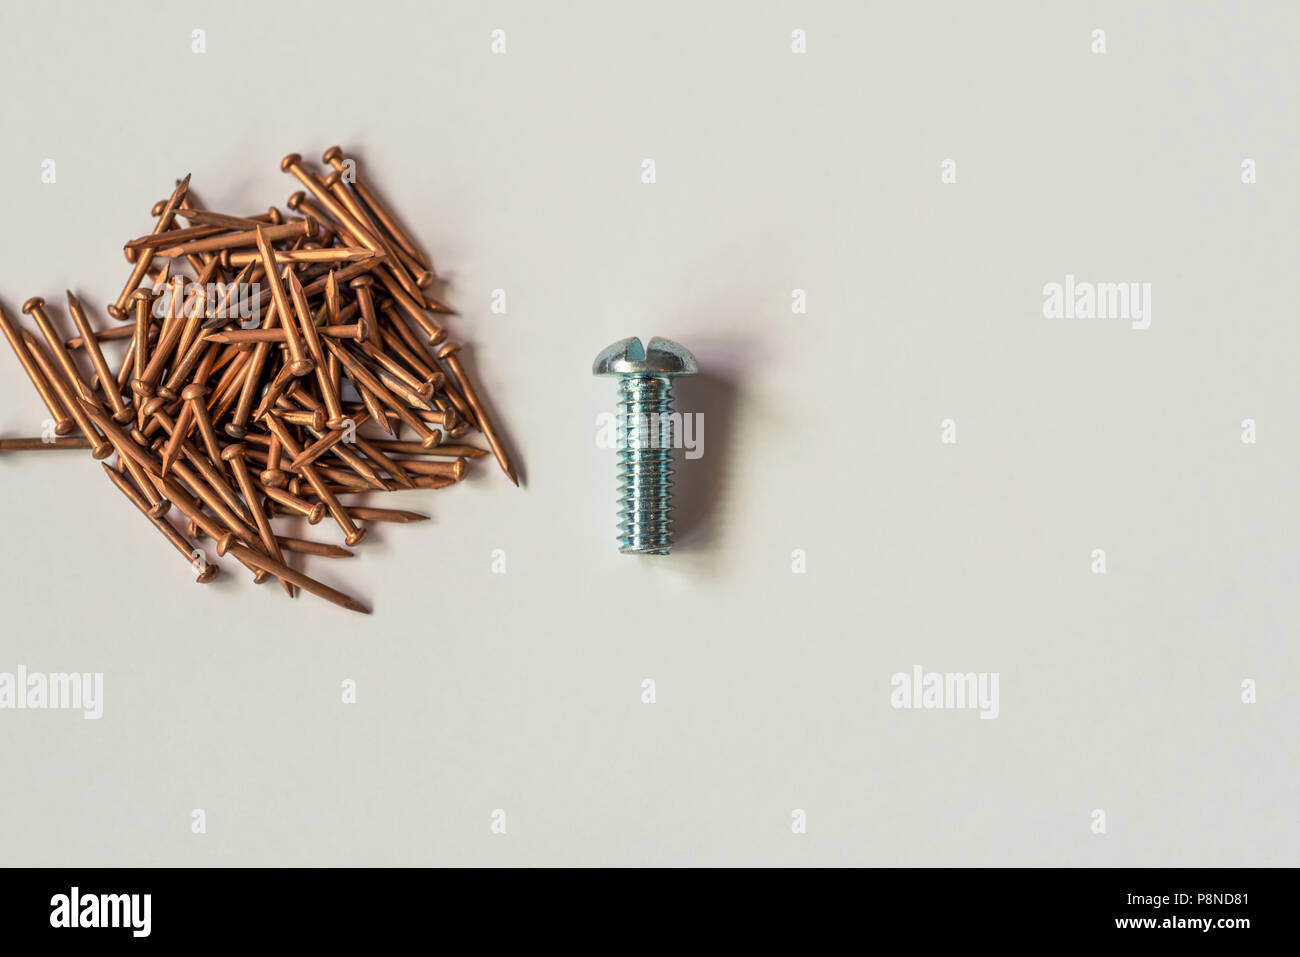 Close up of a group of bronze nails and a single metal screw. - Stock Image